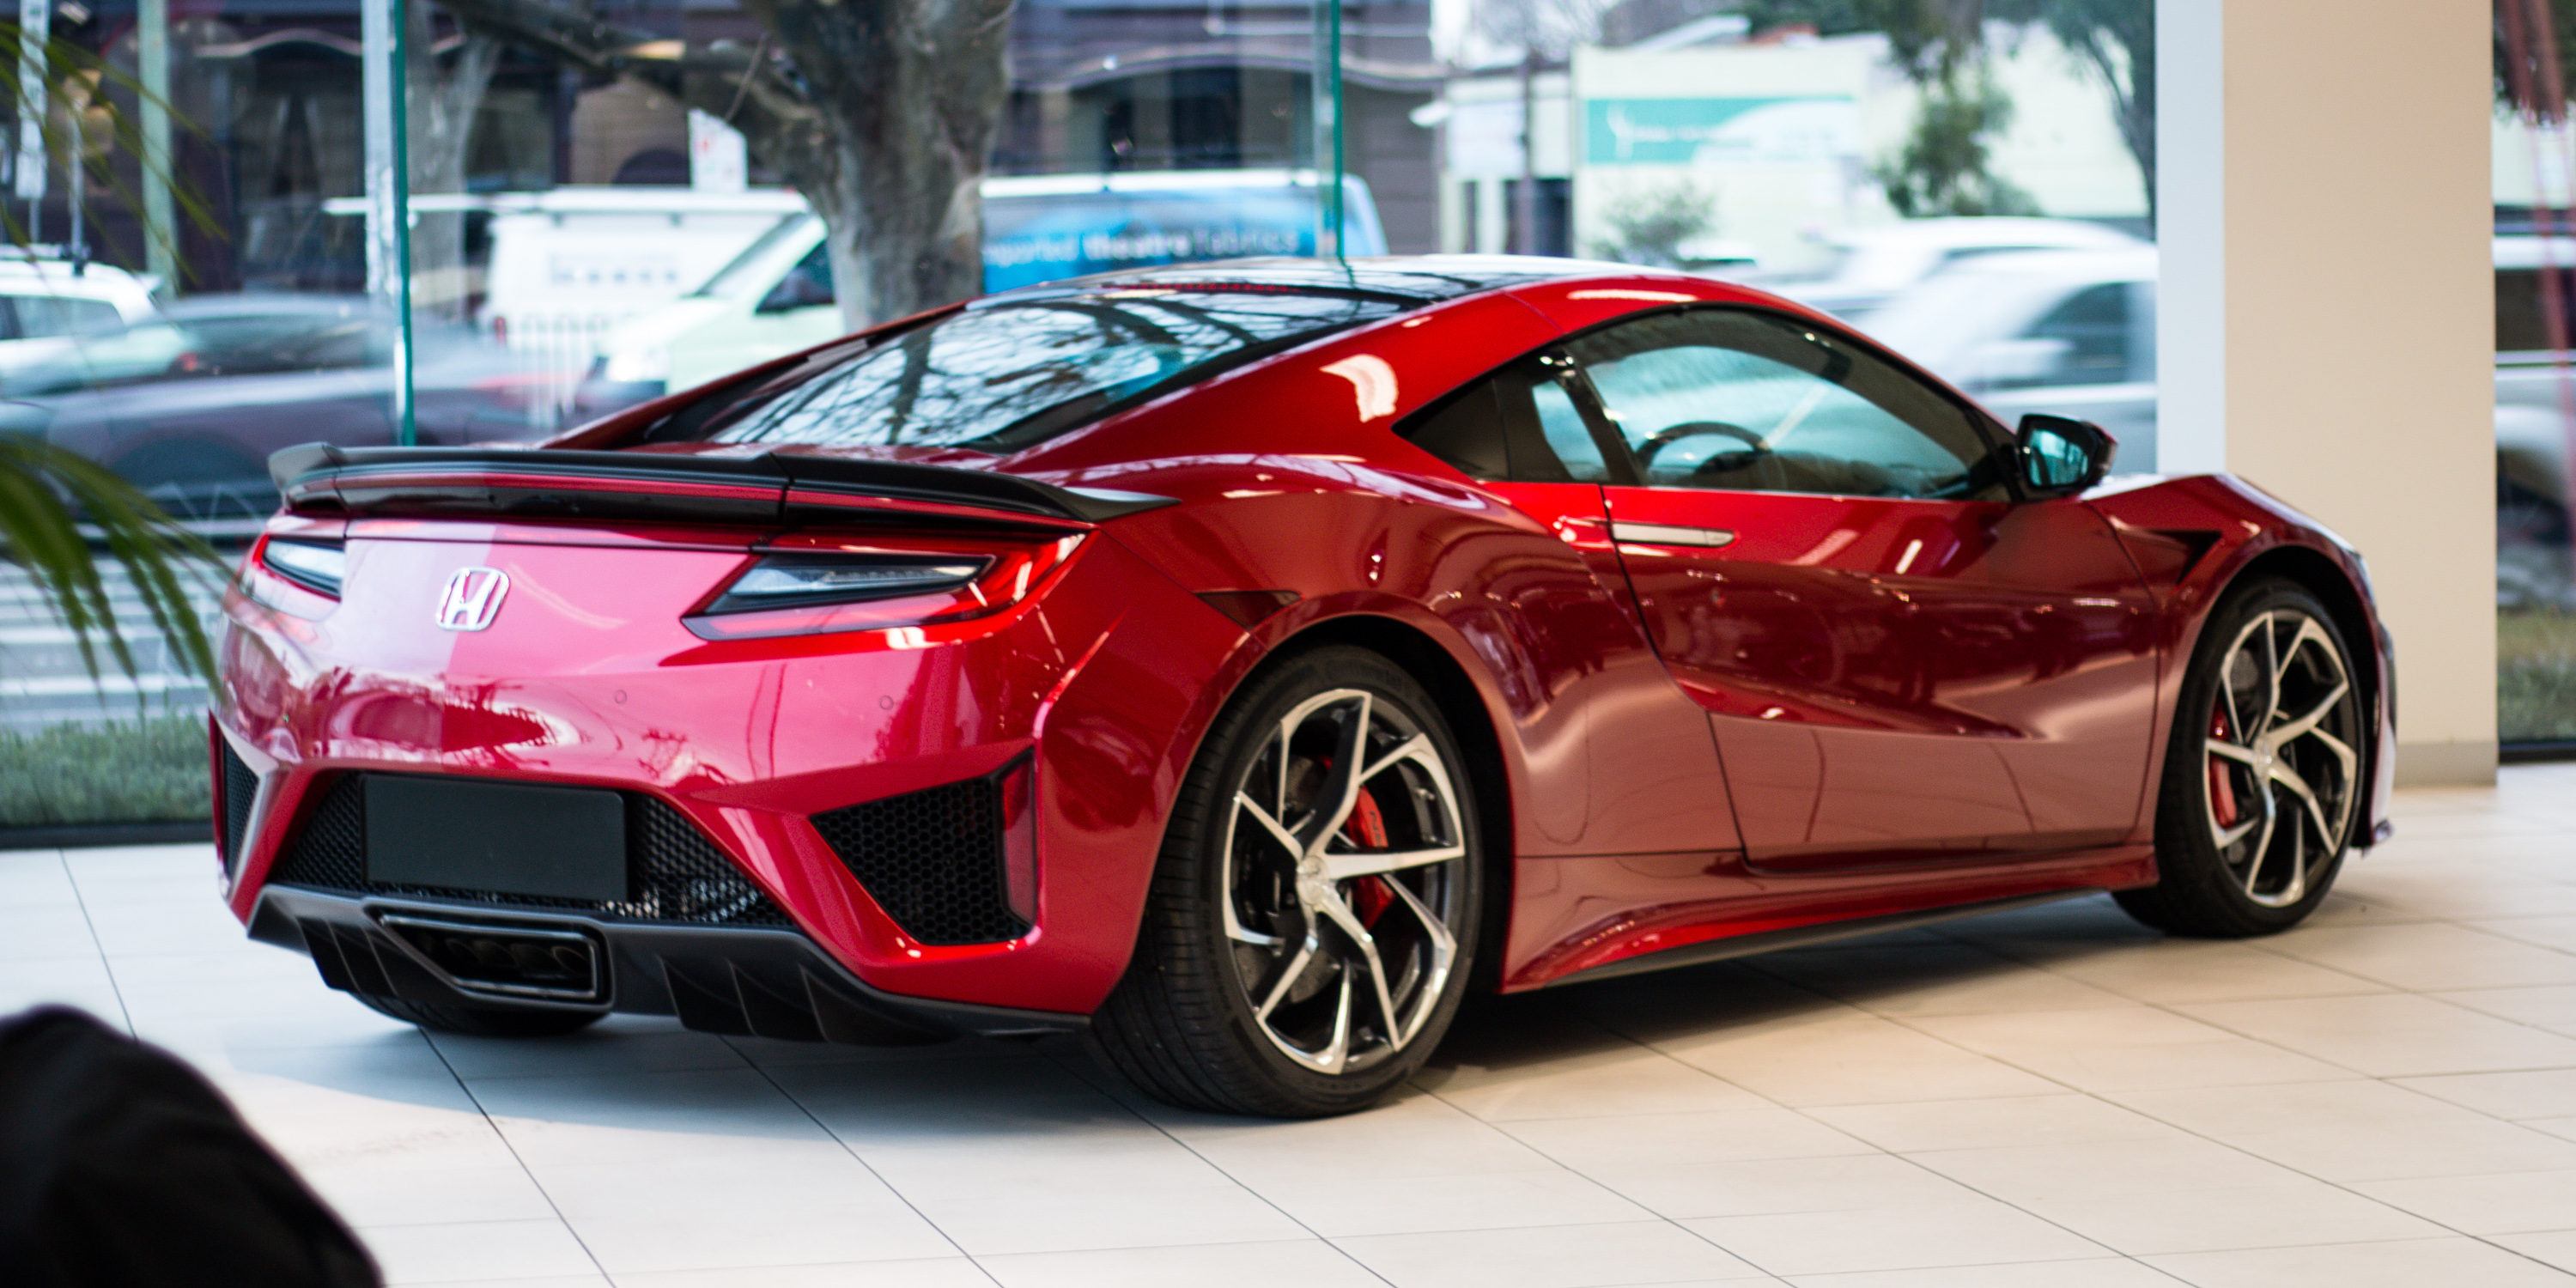 2017 honda nsx 420 000 driveaway price tag tipped for for Honda cars 2017